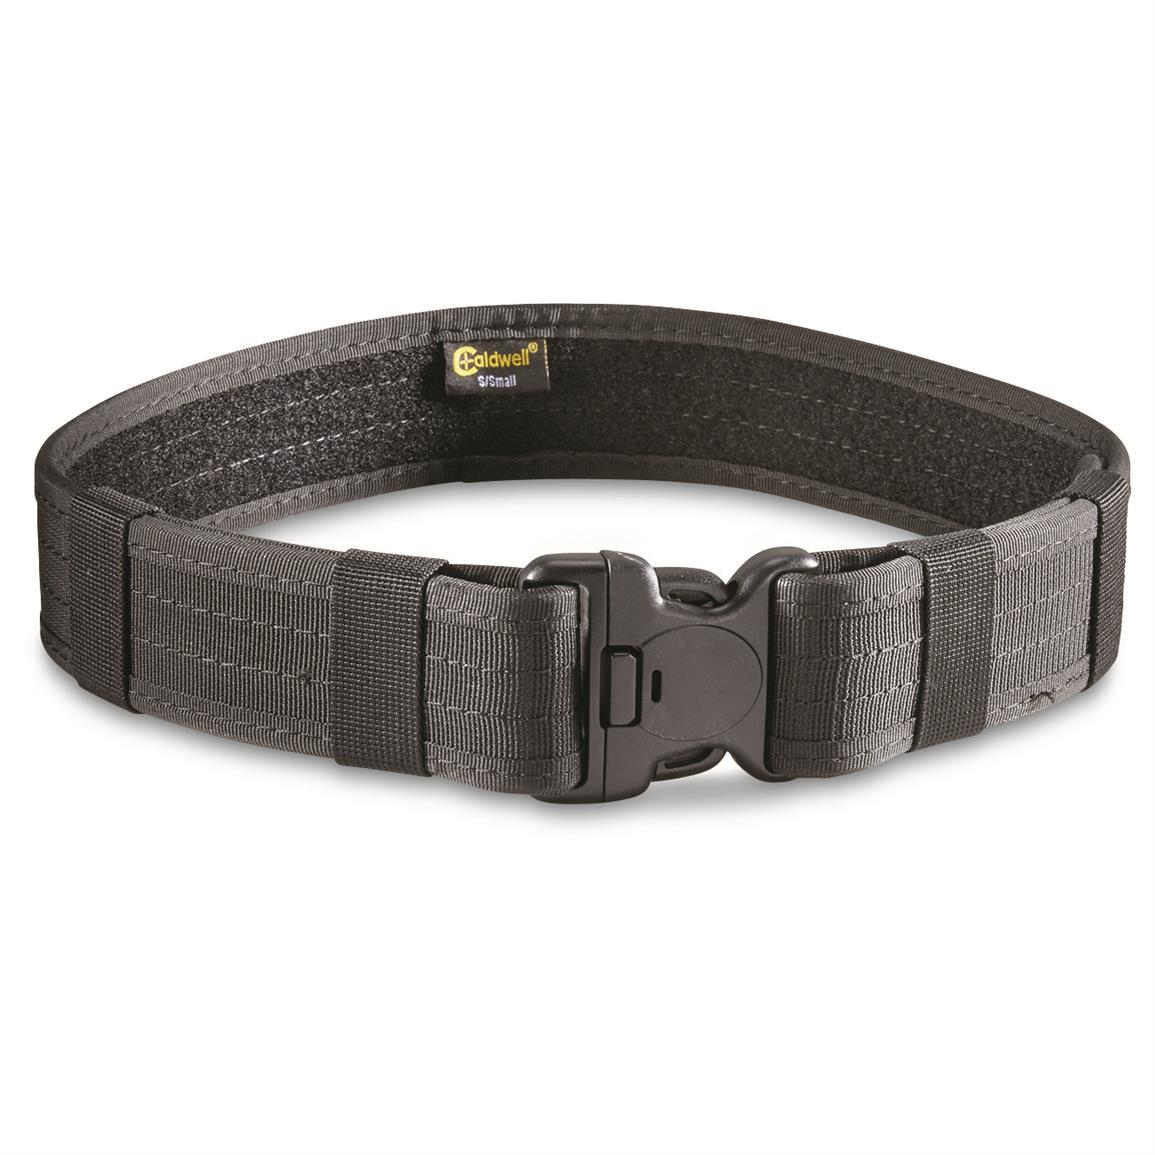 "Caldwell Tac Ops Duty Belt, Small, 28"" - 36"" Waist"